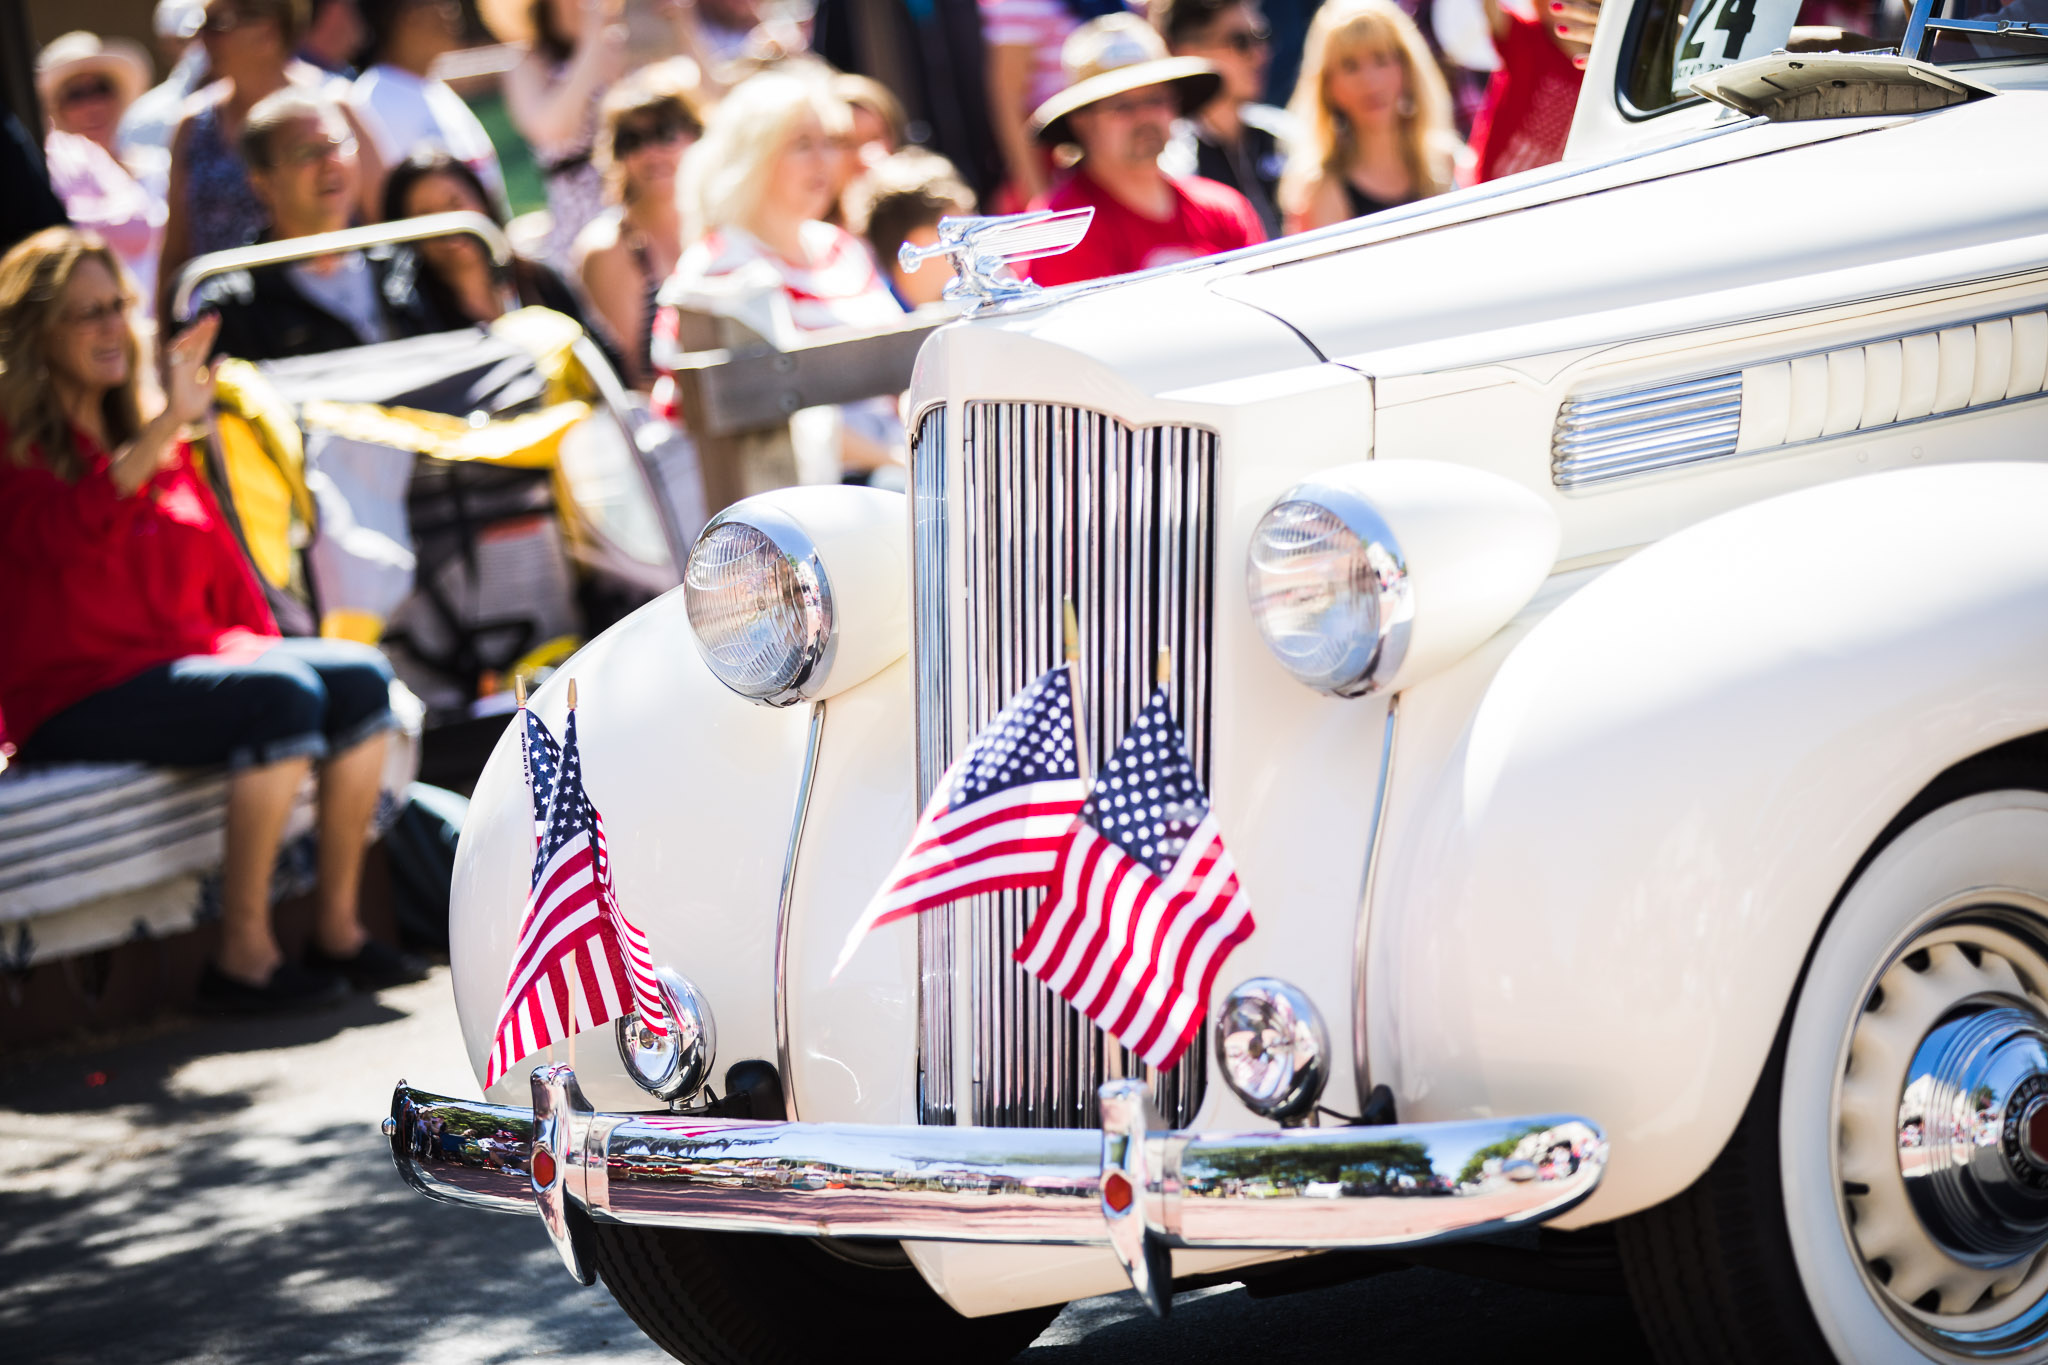 Archer_Inspired_Photography_Morgan_Hill_California_4th_of_july_parade-63.jpg